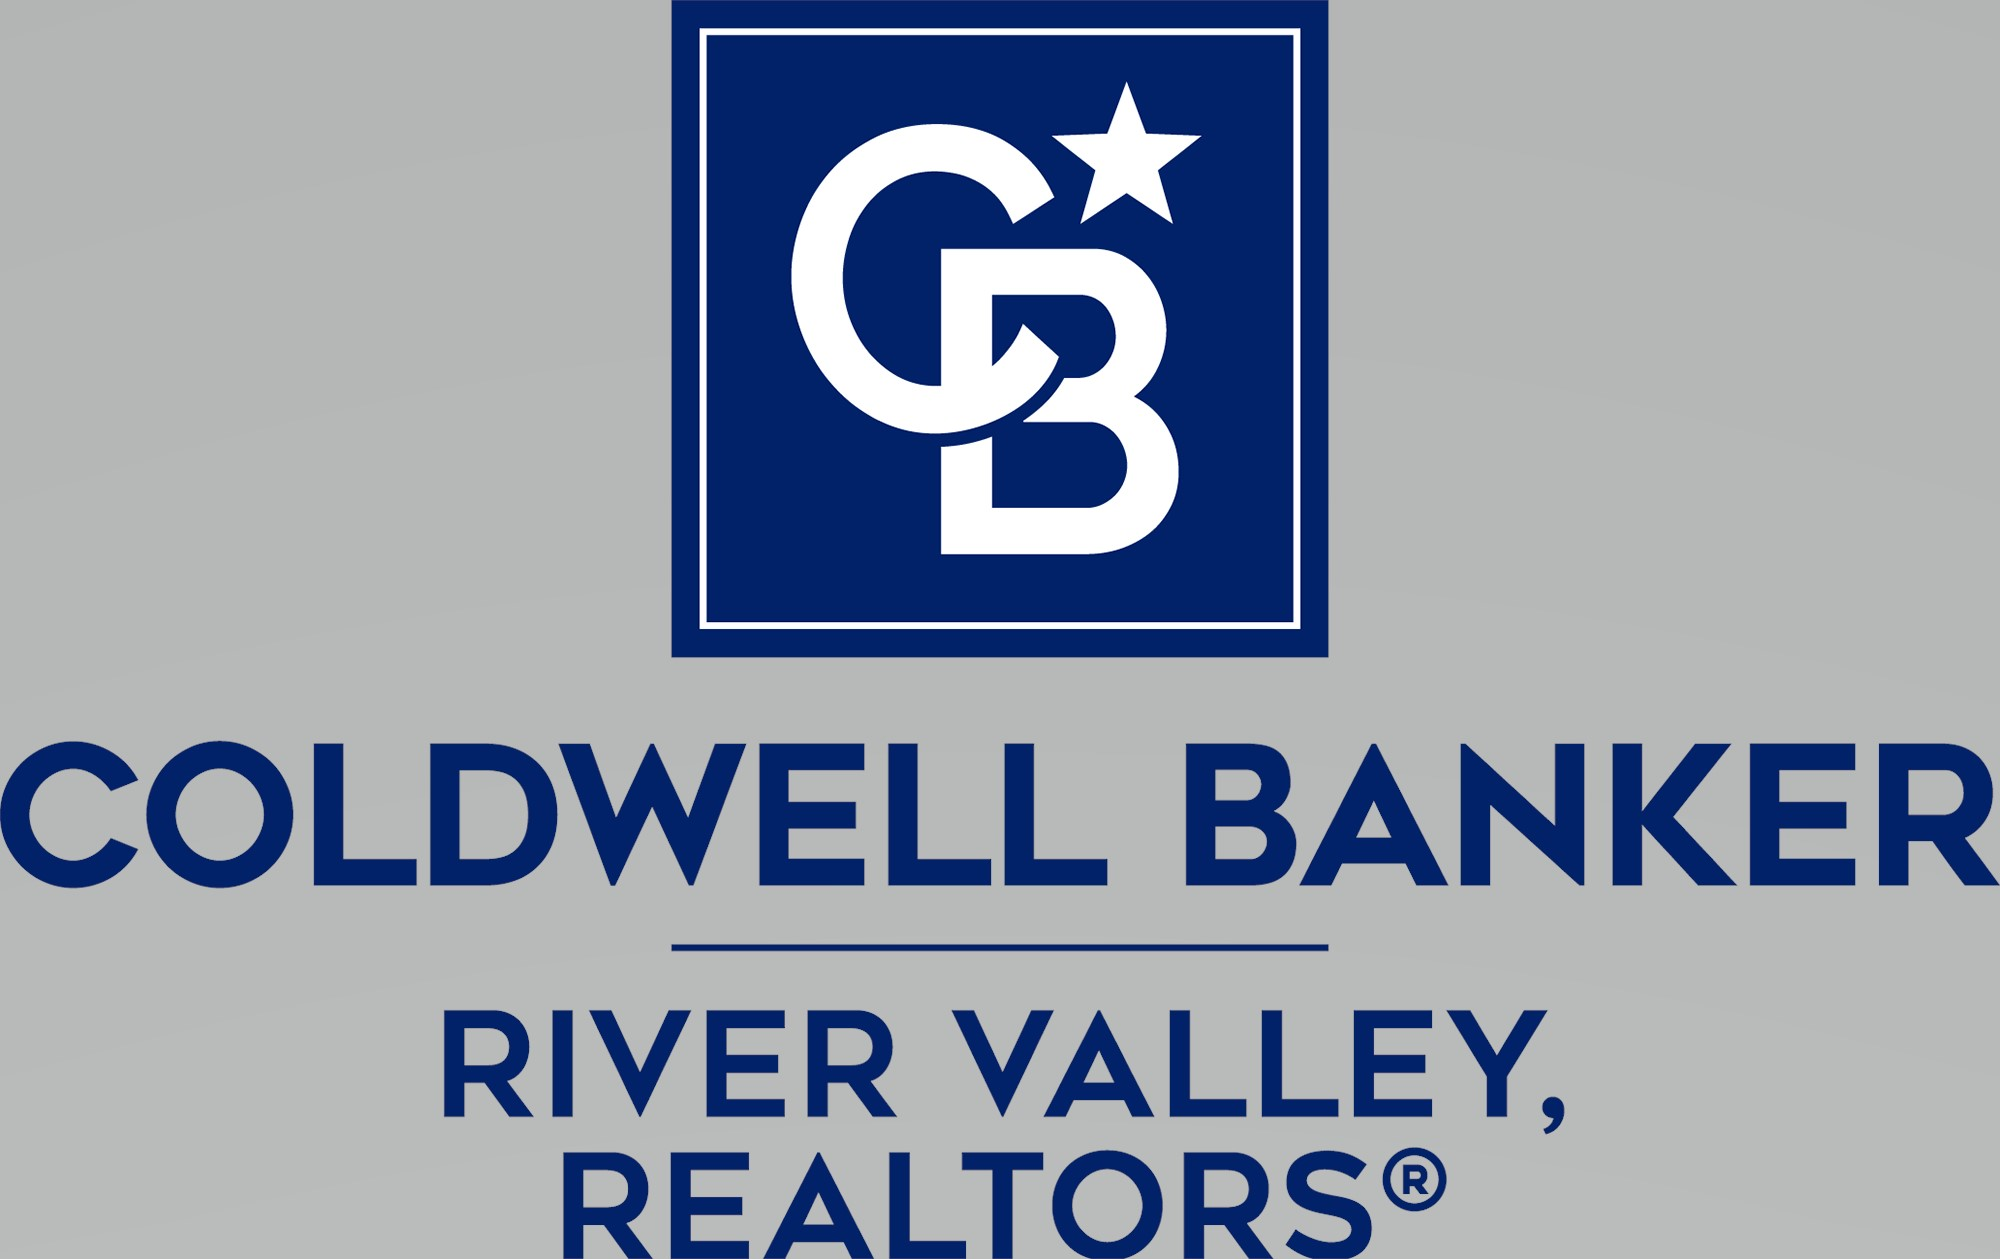 Bob Skeels - Coldwell Banker River Valley Realtors